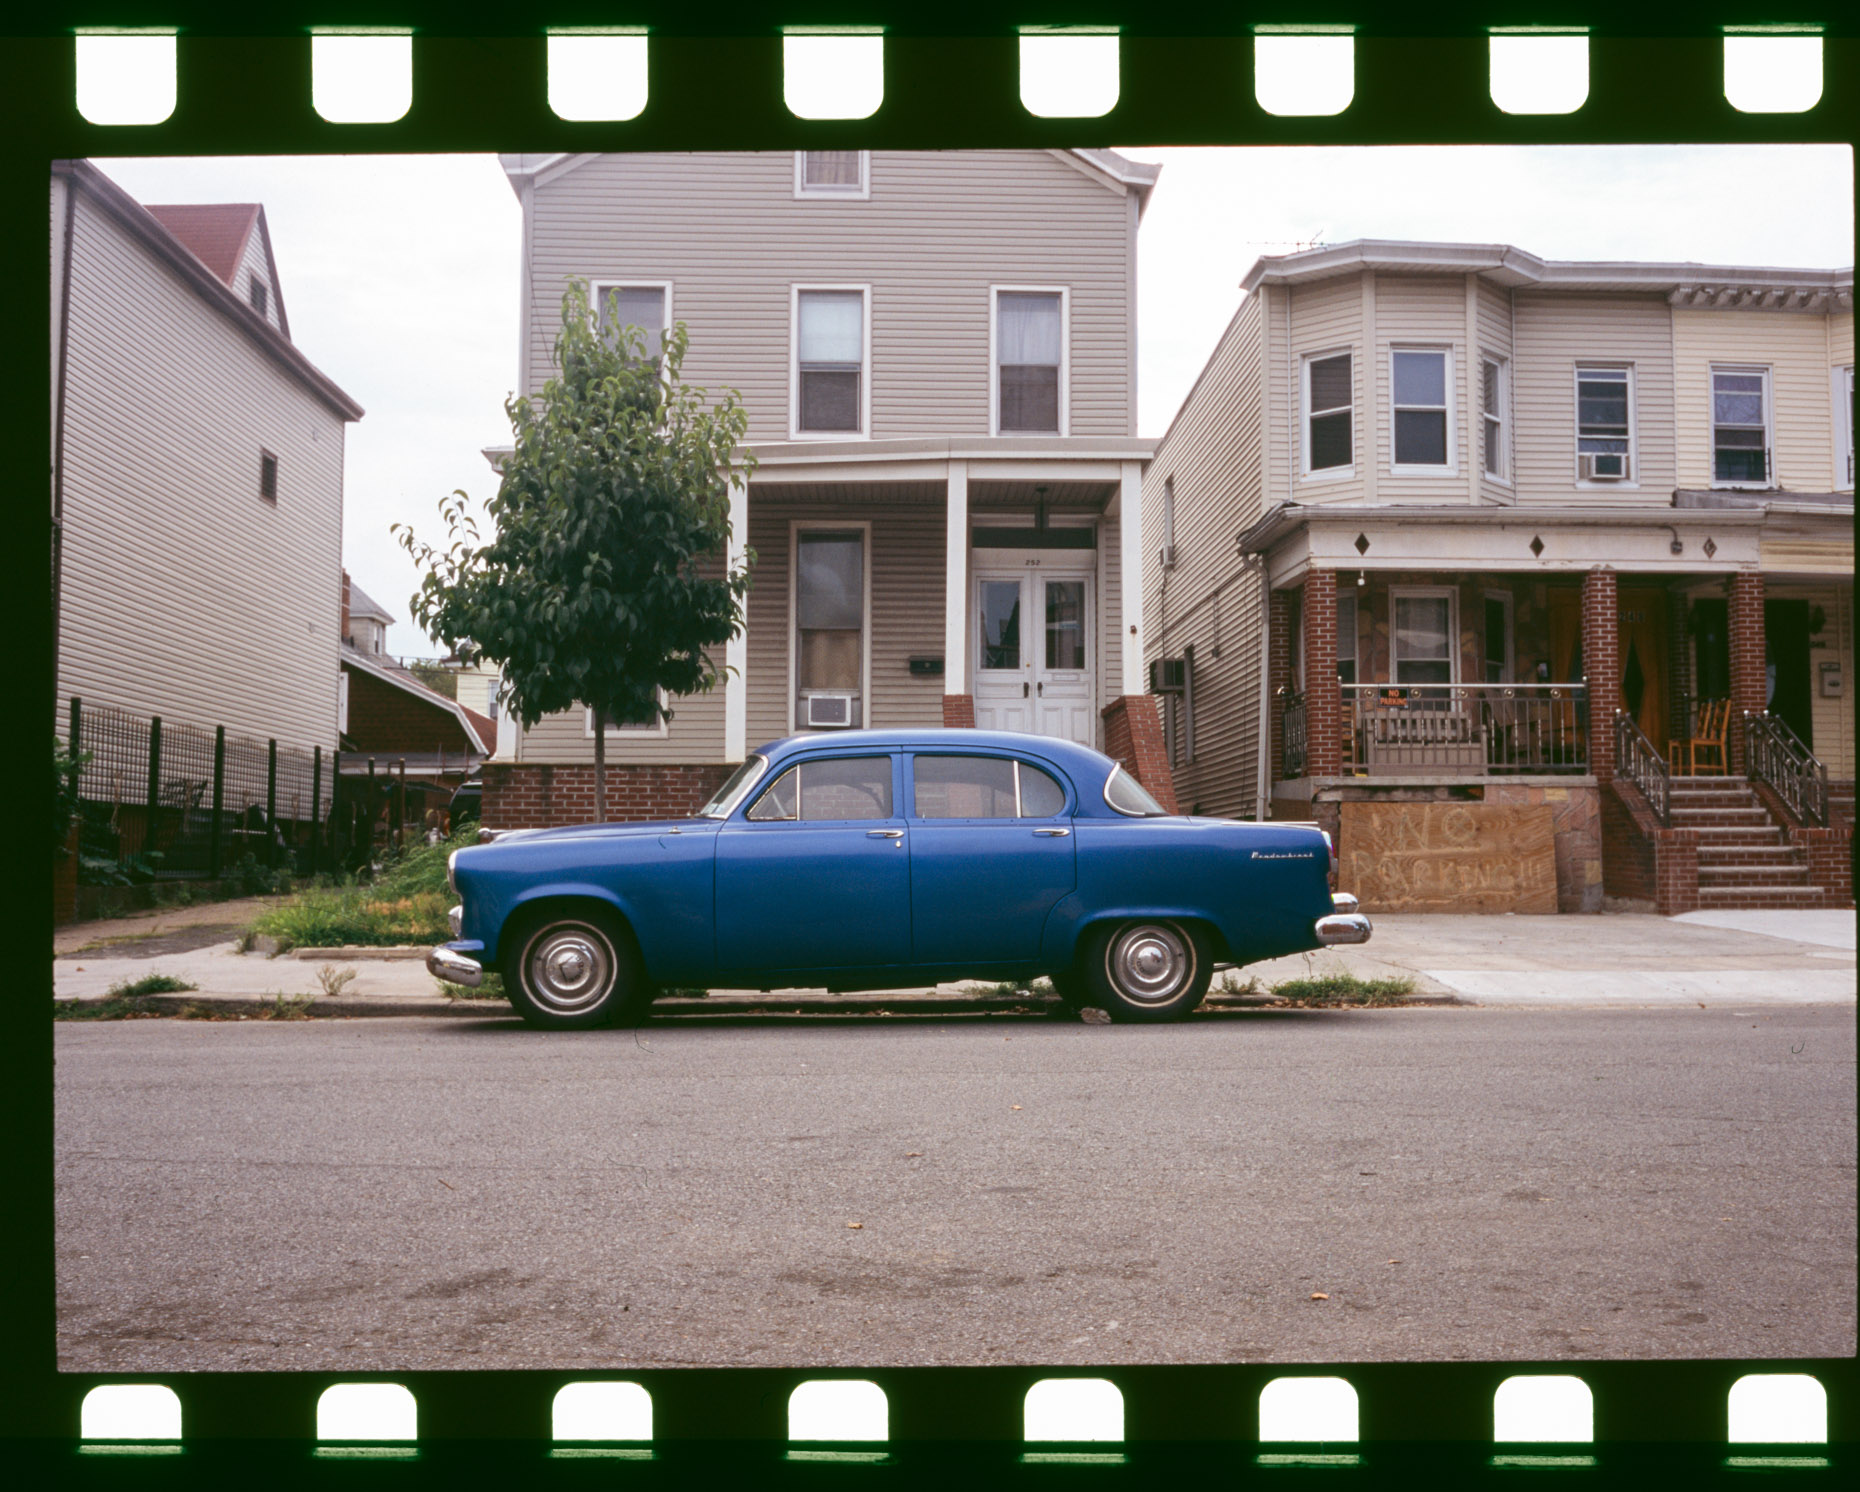 A blue dodge Meadowbrook sits on a suburban street in Kensington, Brooklyn in New York.